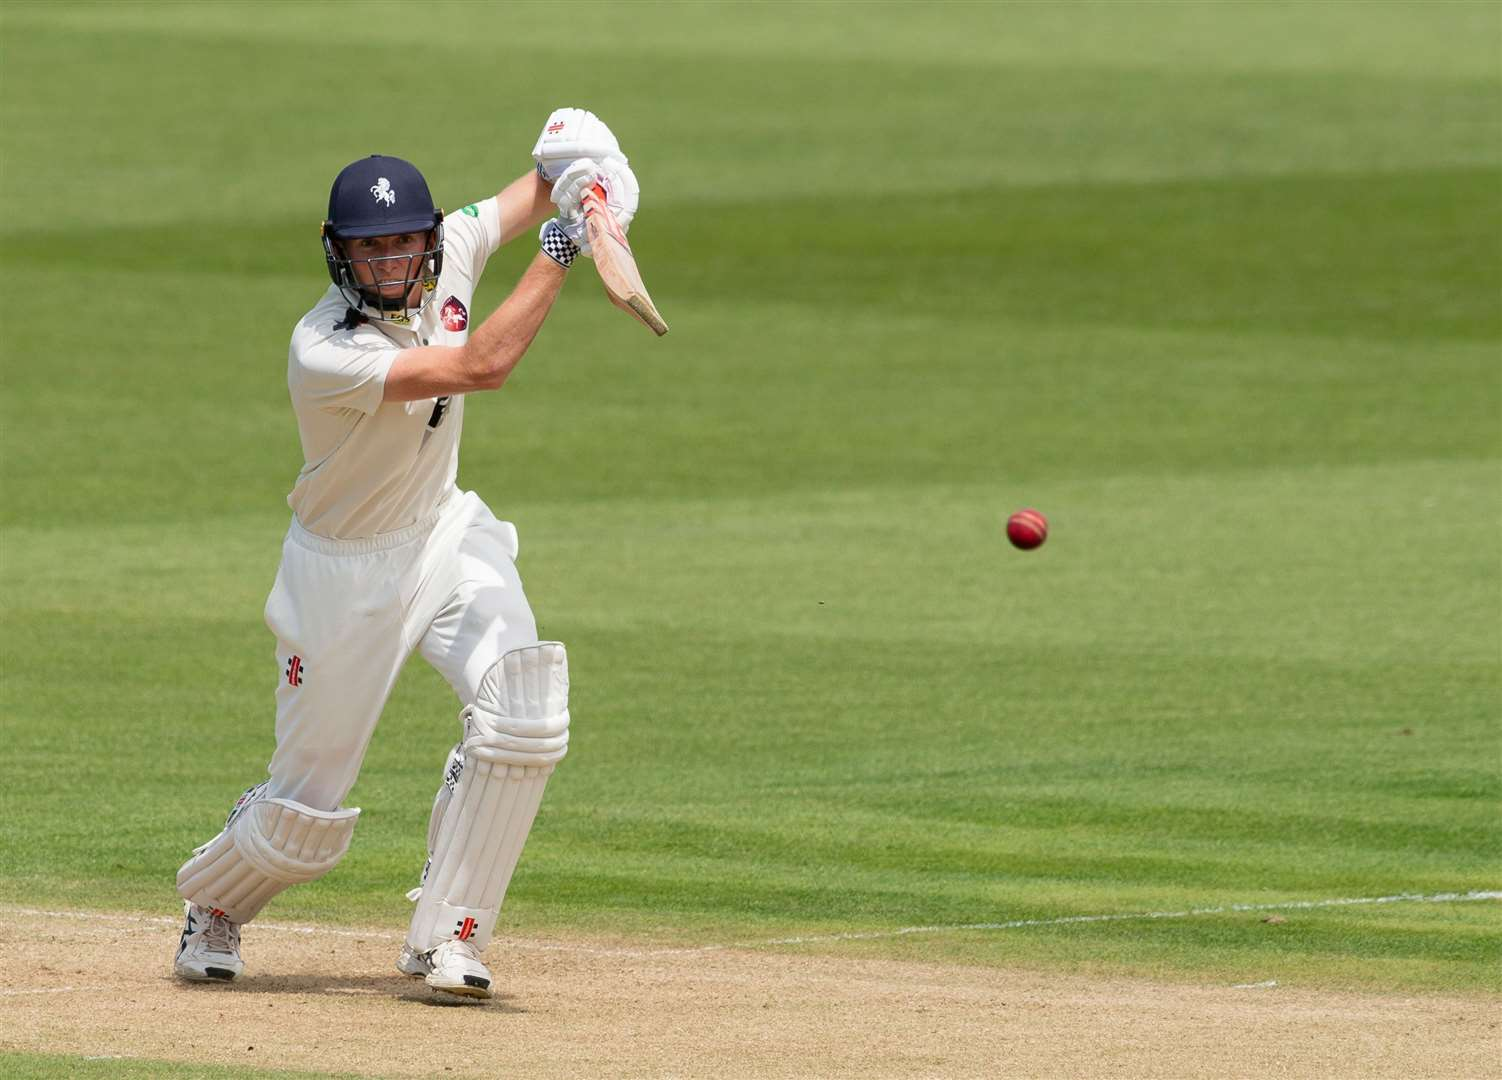 Zak Crawley drives through wide mid-off against Warwickshire. Picture: Ady Kerry